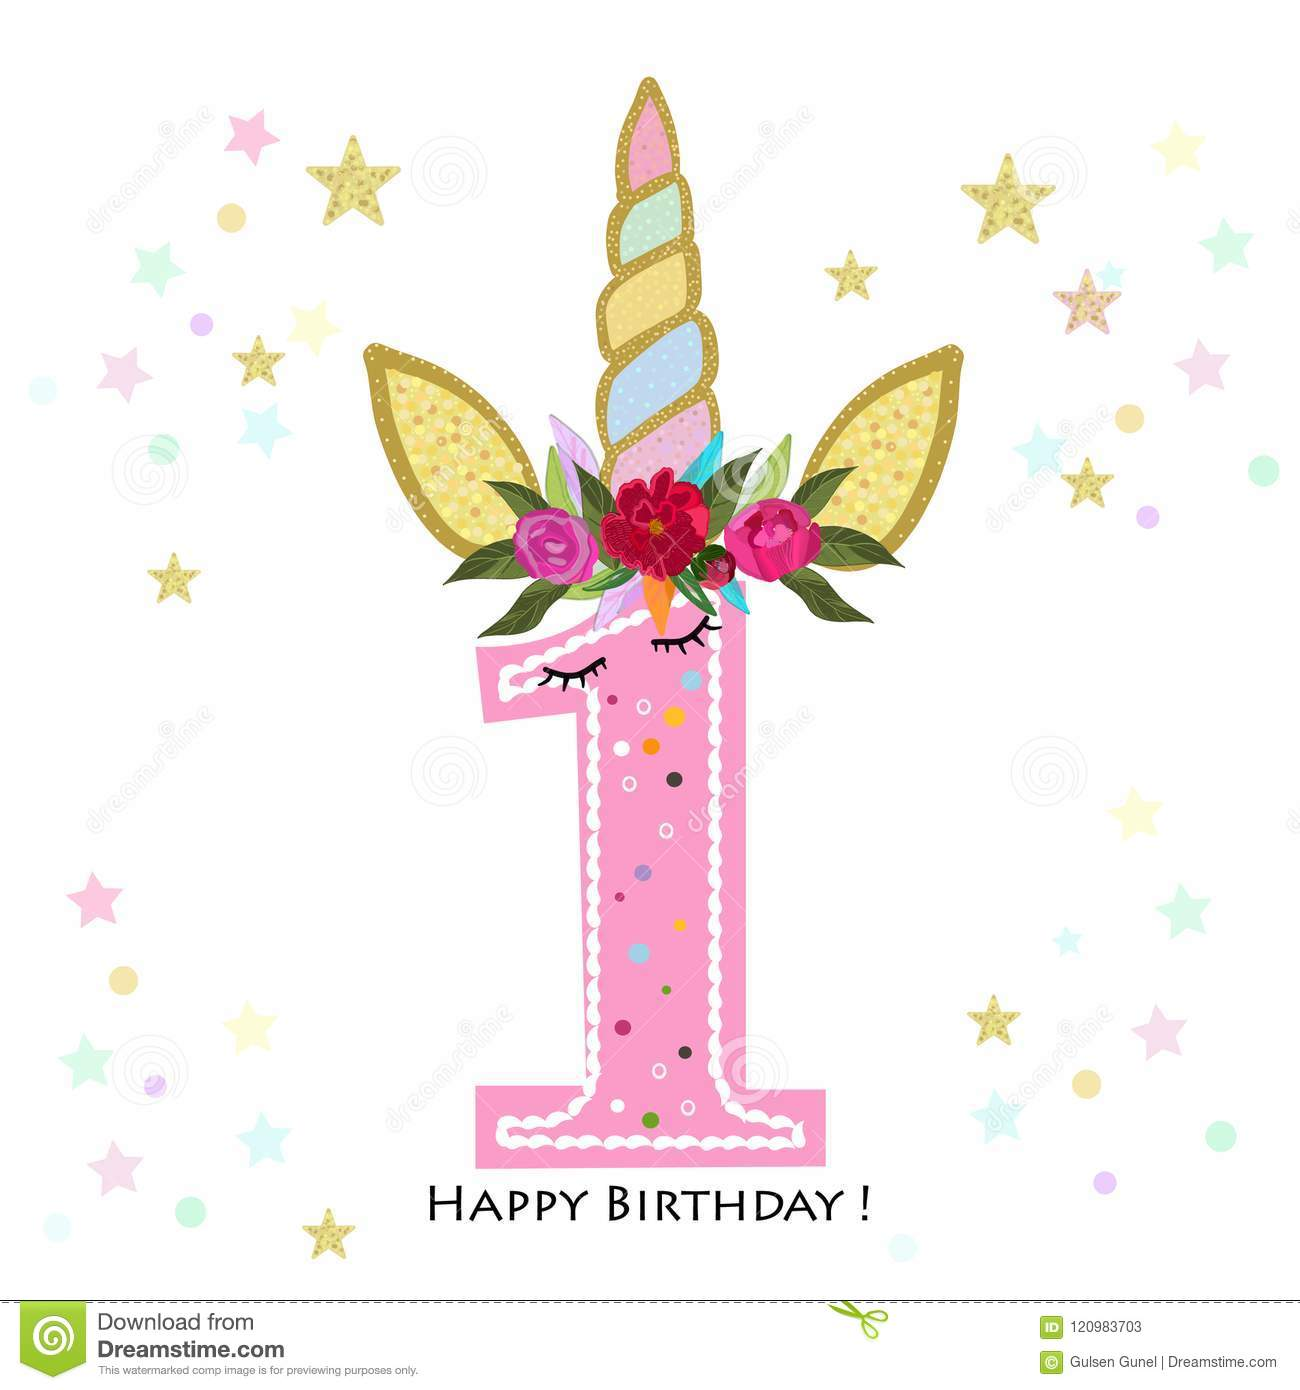 First birthday one unicorn birthday invitation party invitation download first birthday one unicorn birthday invitation party invitation greeting card stock vector stopboris Choice Image